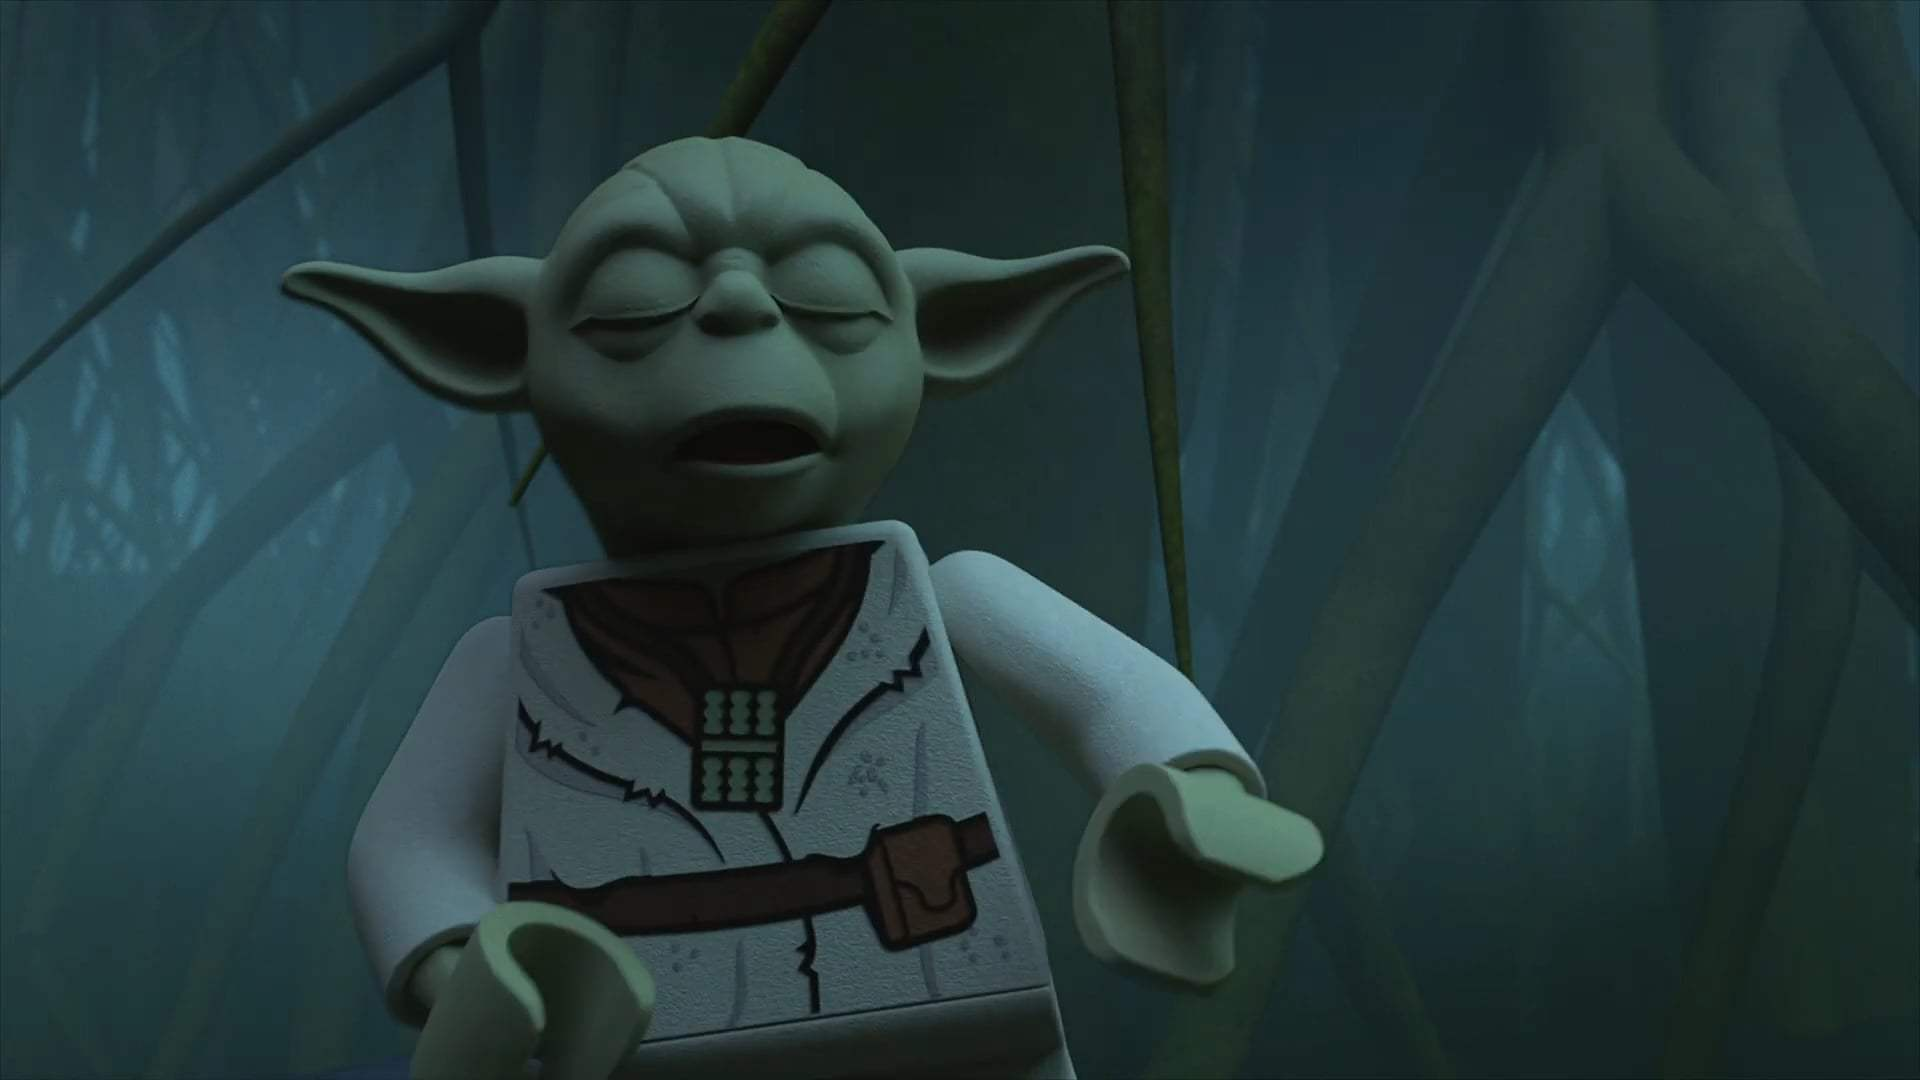 The Lego Star Wars Holiday Special Trailer (2020) Screen Capture #2